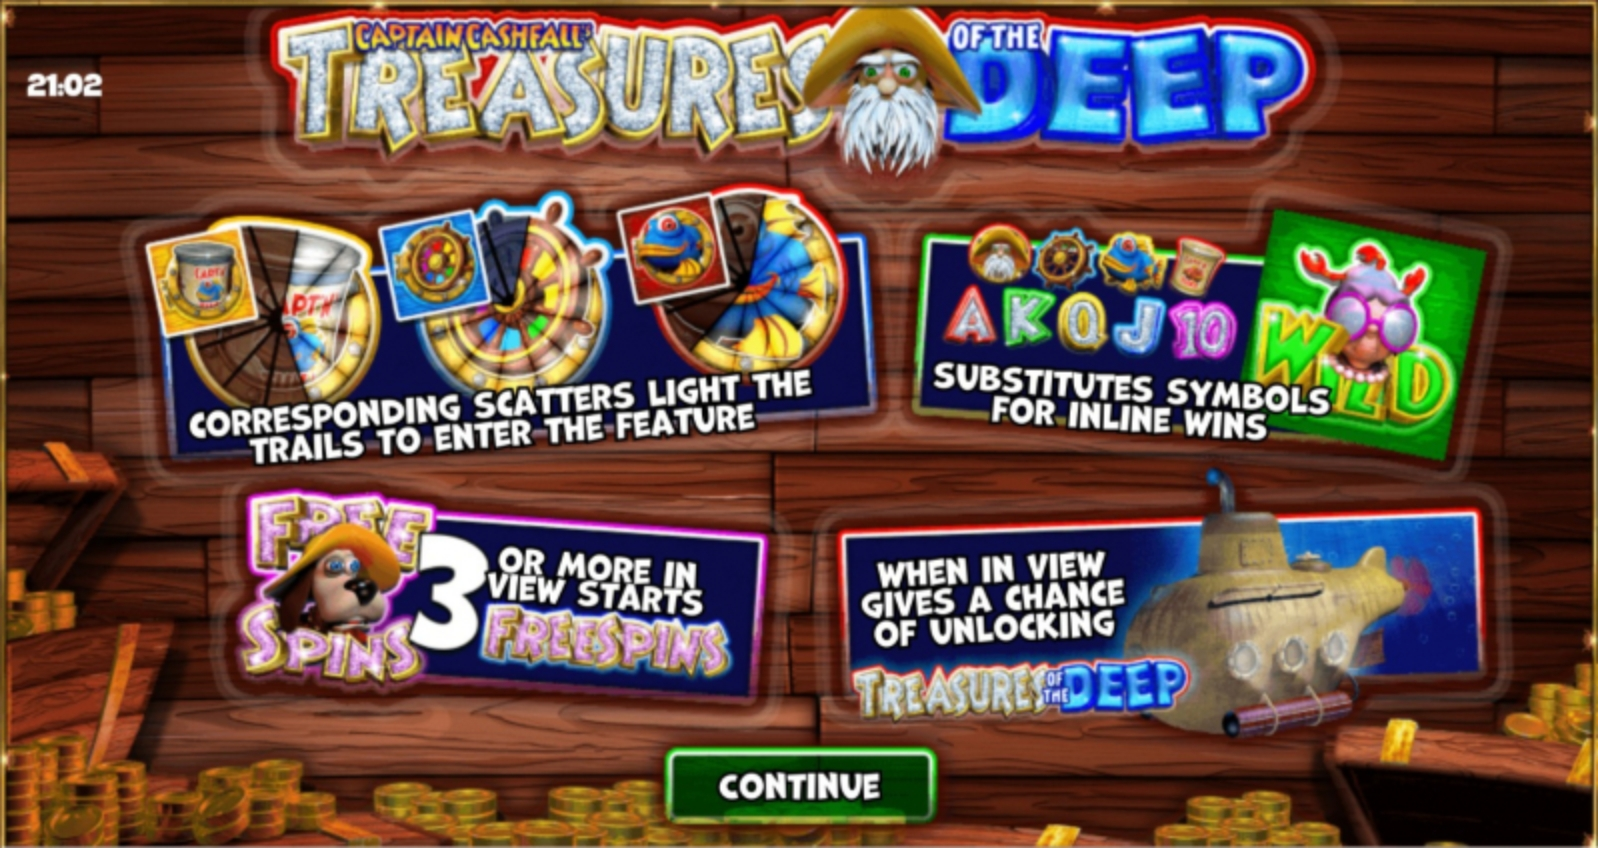 Se Captain Cashfall's Treasures of the Deep Online Slot Demo Game, Storm Gaming